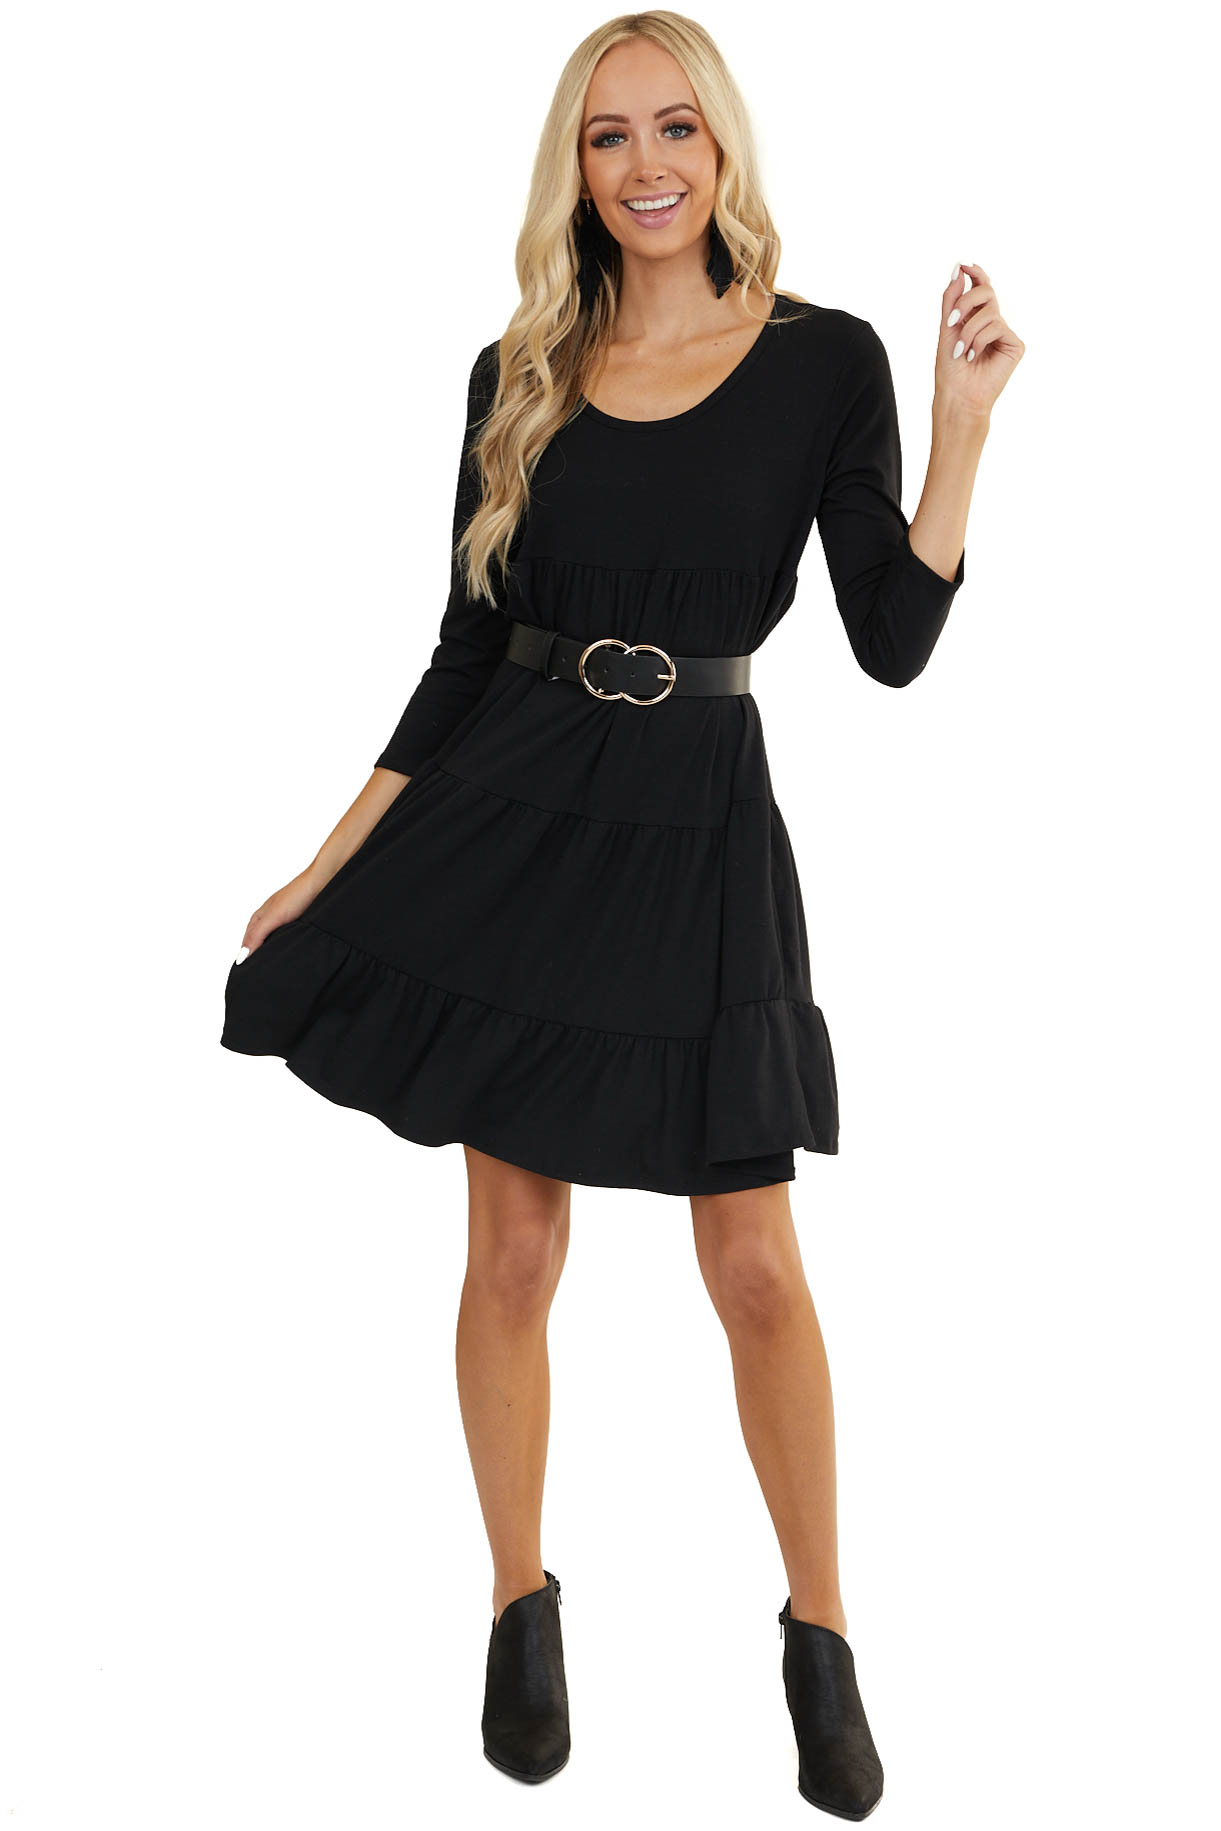 Black Tiered Short Knit Dress with 3/4 Length Sleeves